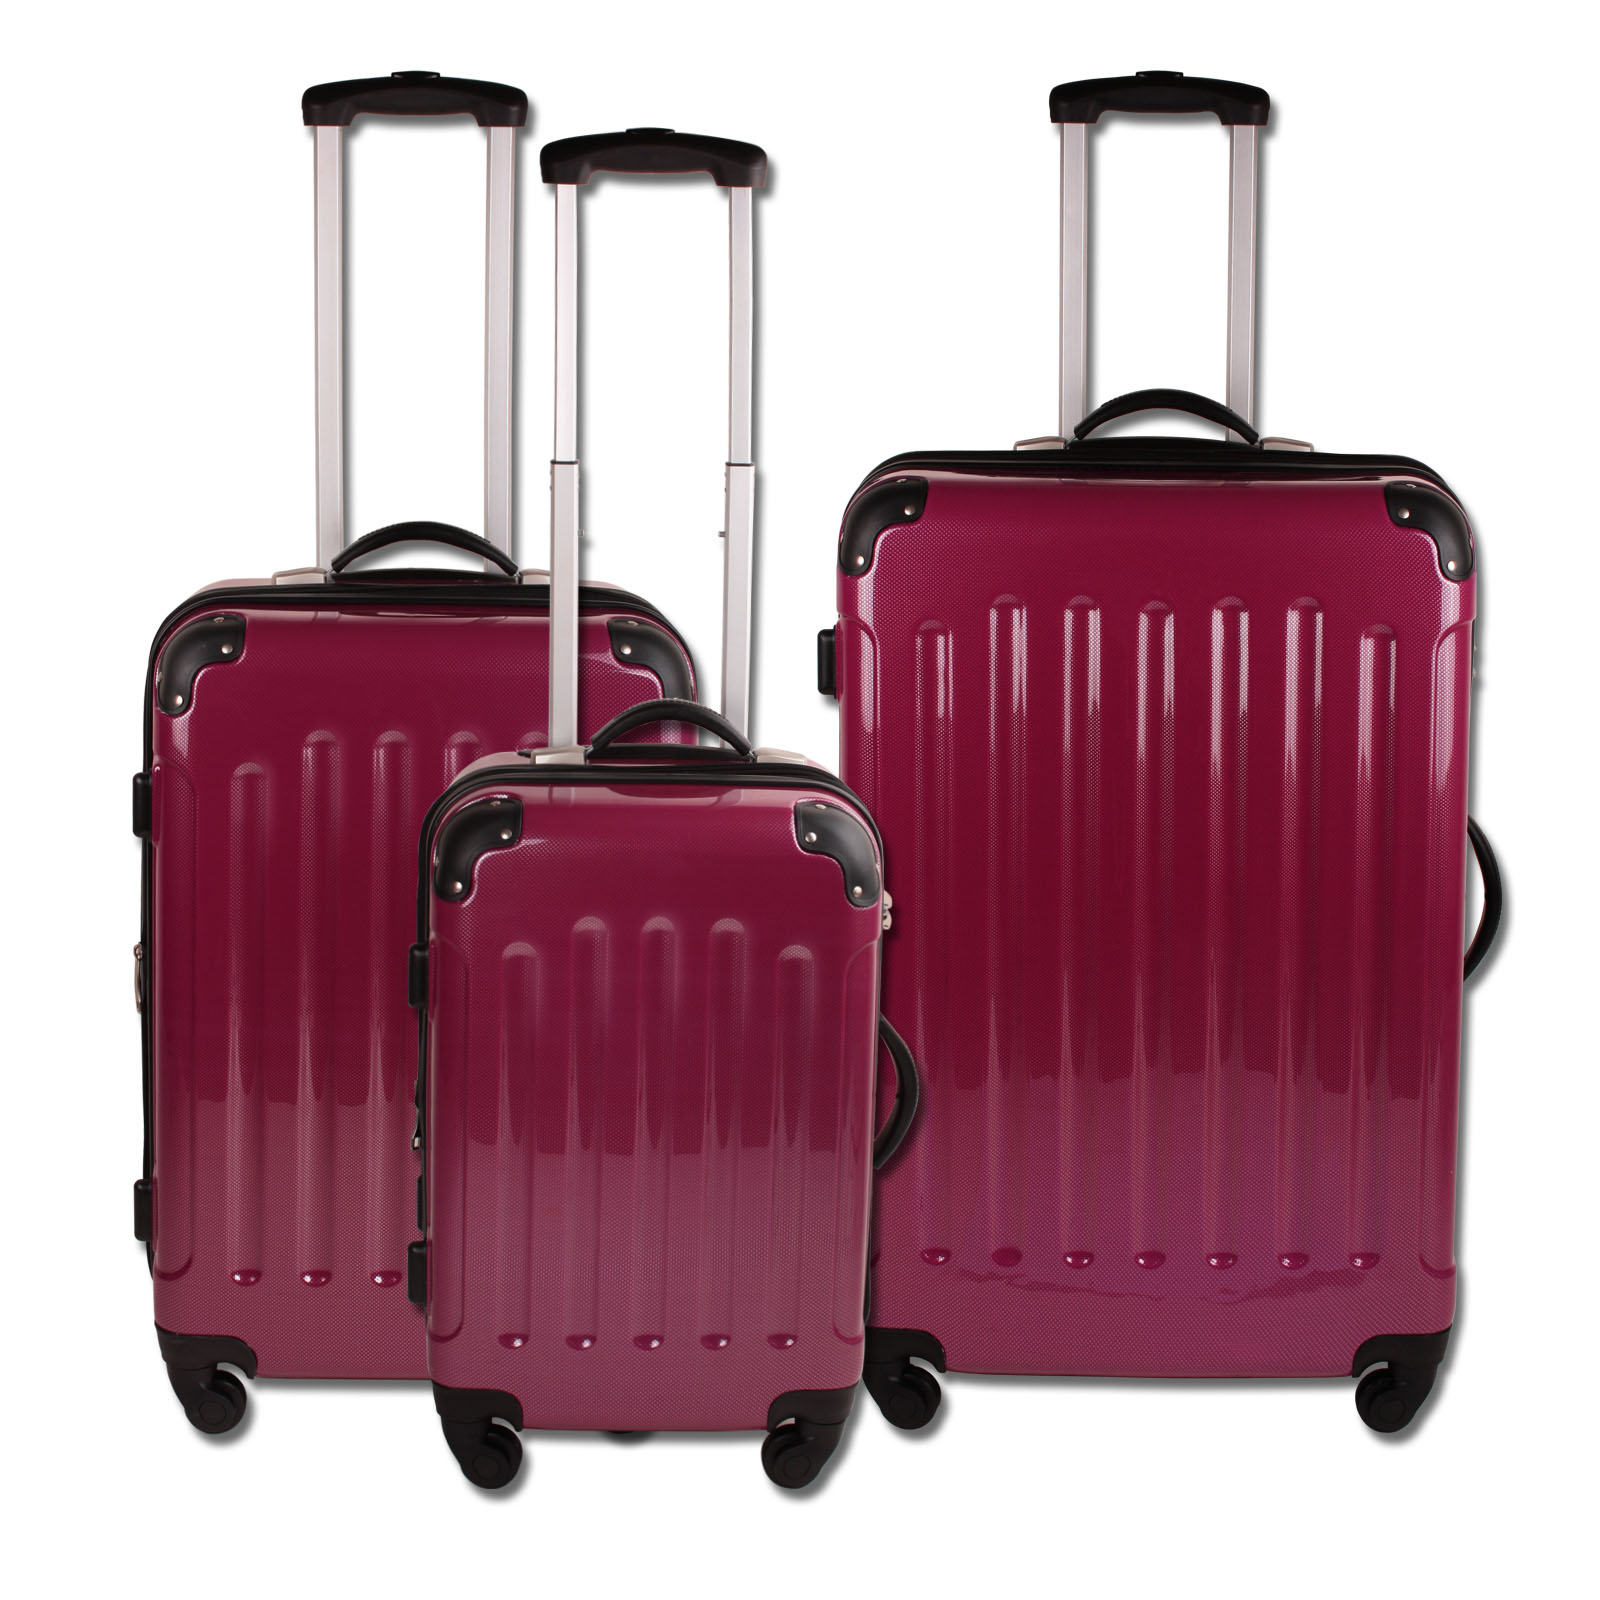 valises 3 pces valise de voyage trolley valise coque rigide en polycarbonate ebay. Black Bedroom Furniture Sets. Home Design Ideas